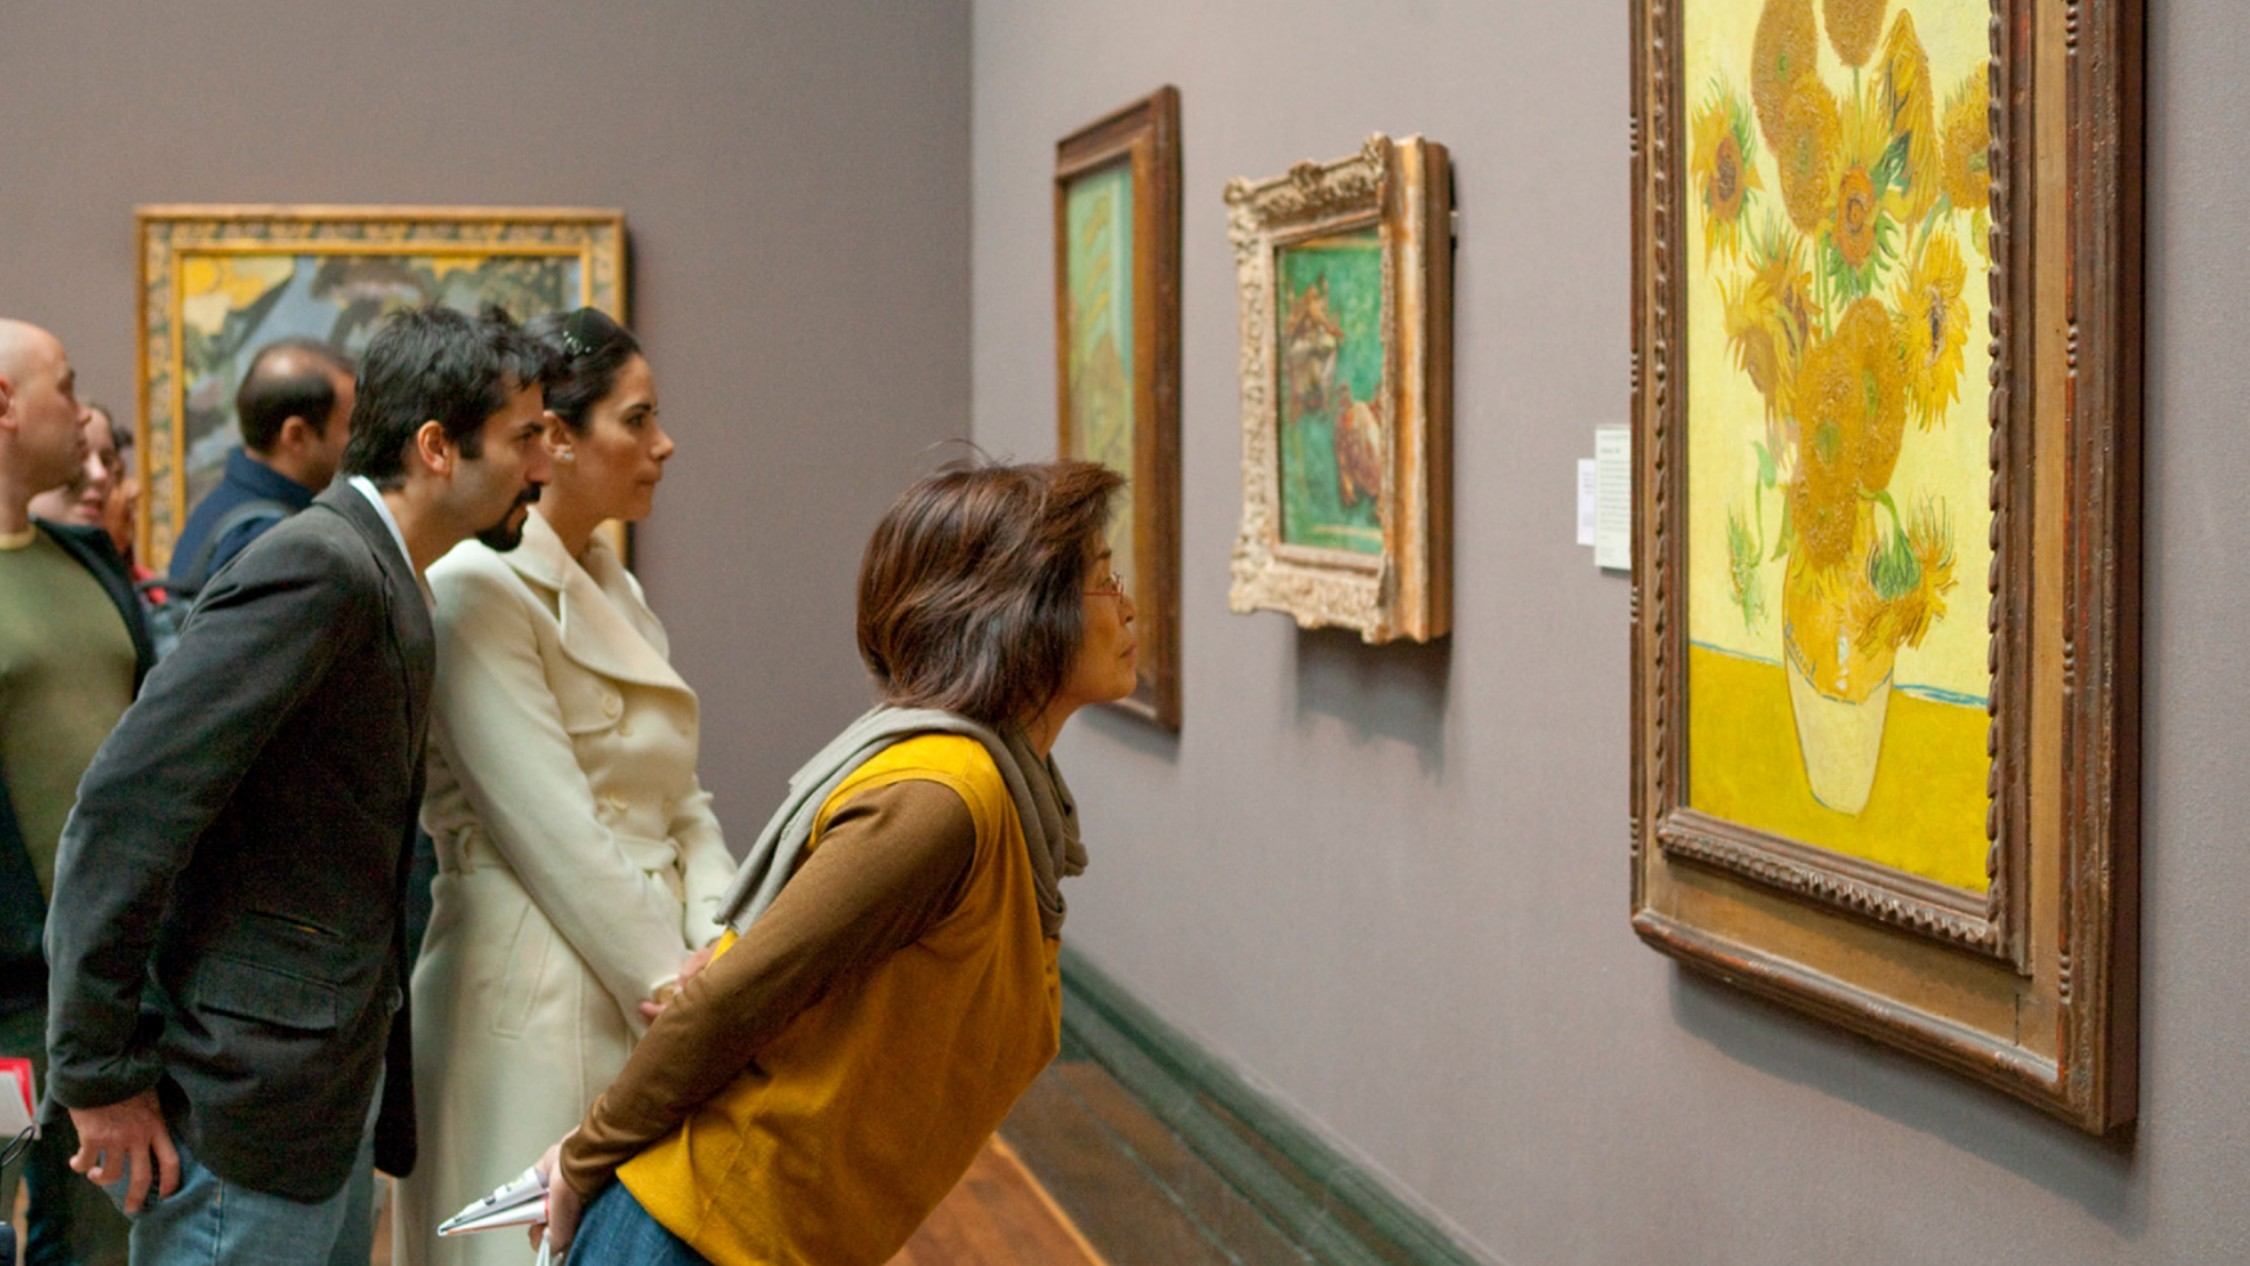 Gallery viewers looking closely at Vincent Van Gogh's 'Sunflowers'